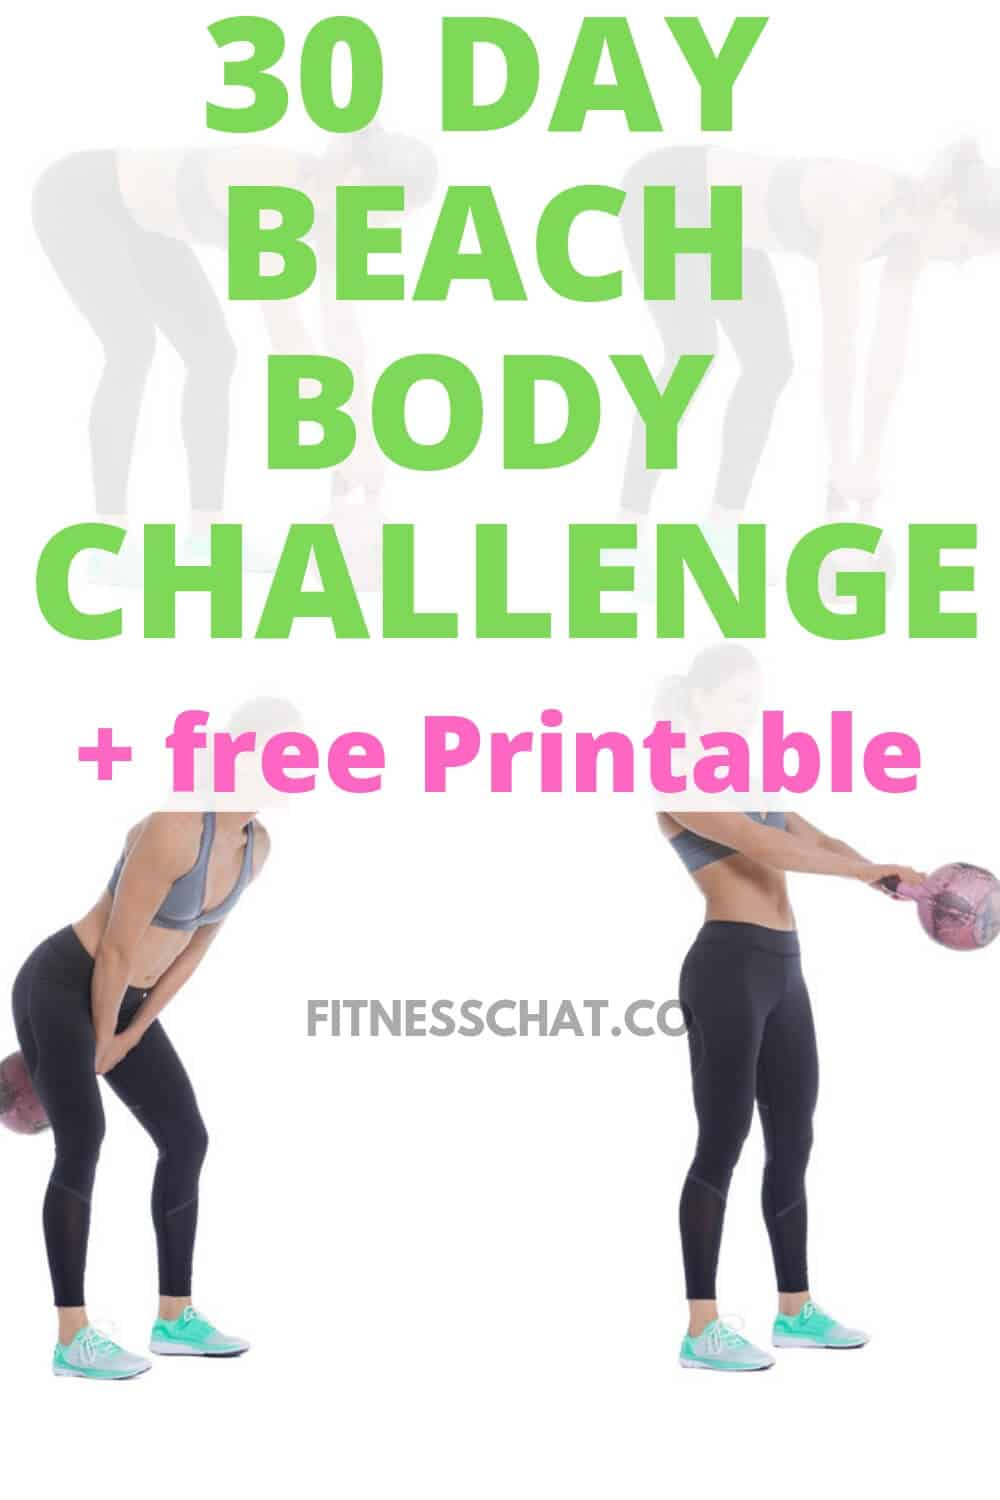 Tone your arms,your butt and tone your abs. 30 day beach body bikini workout challenge